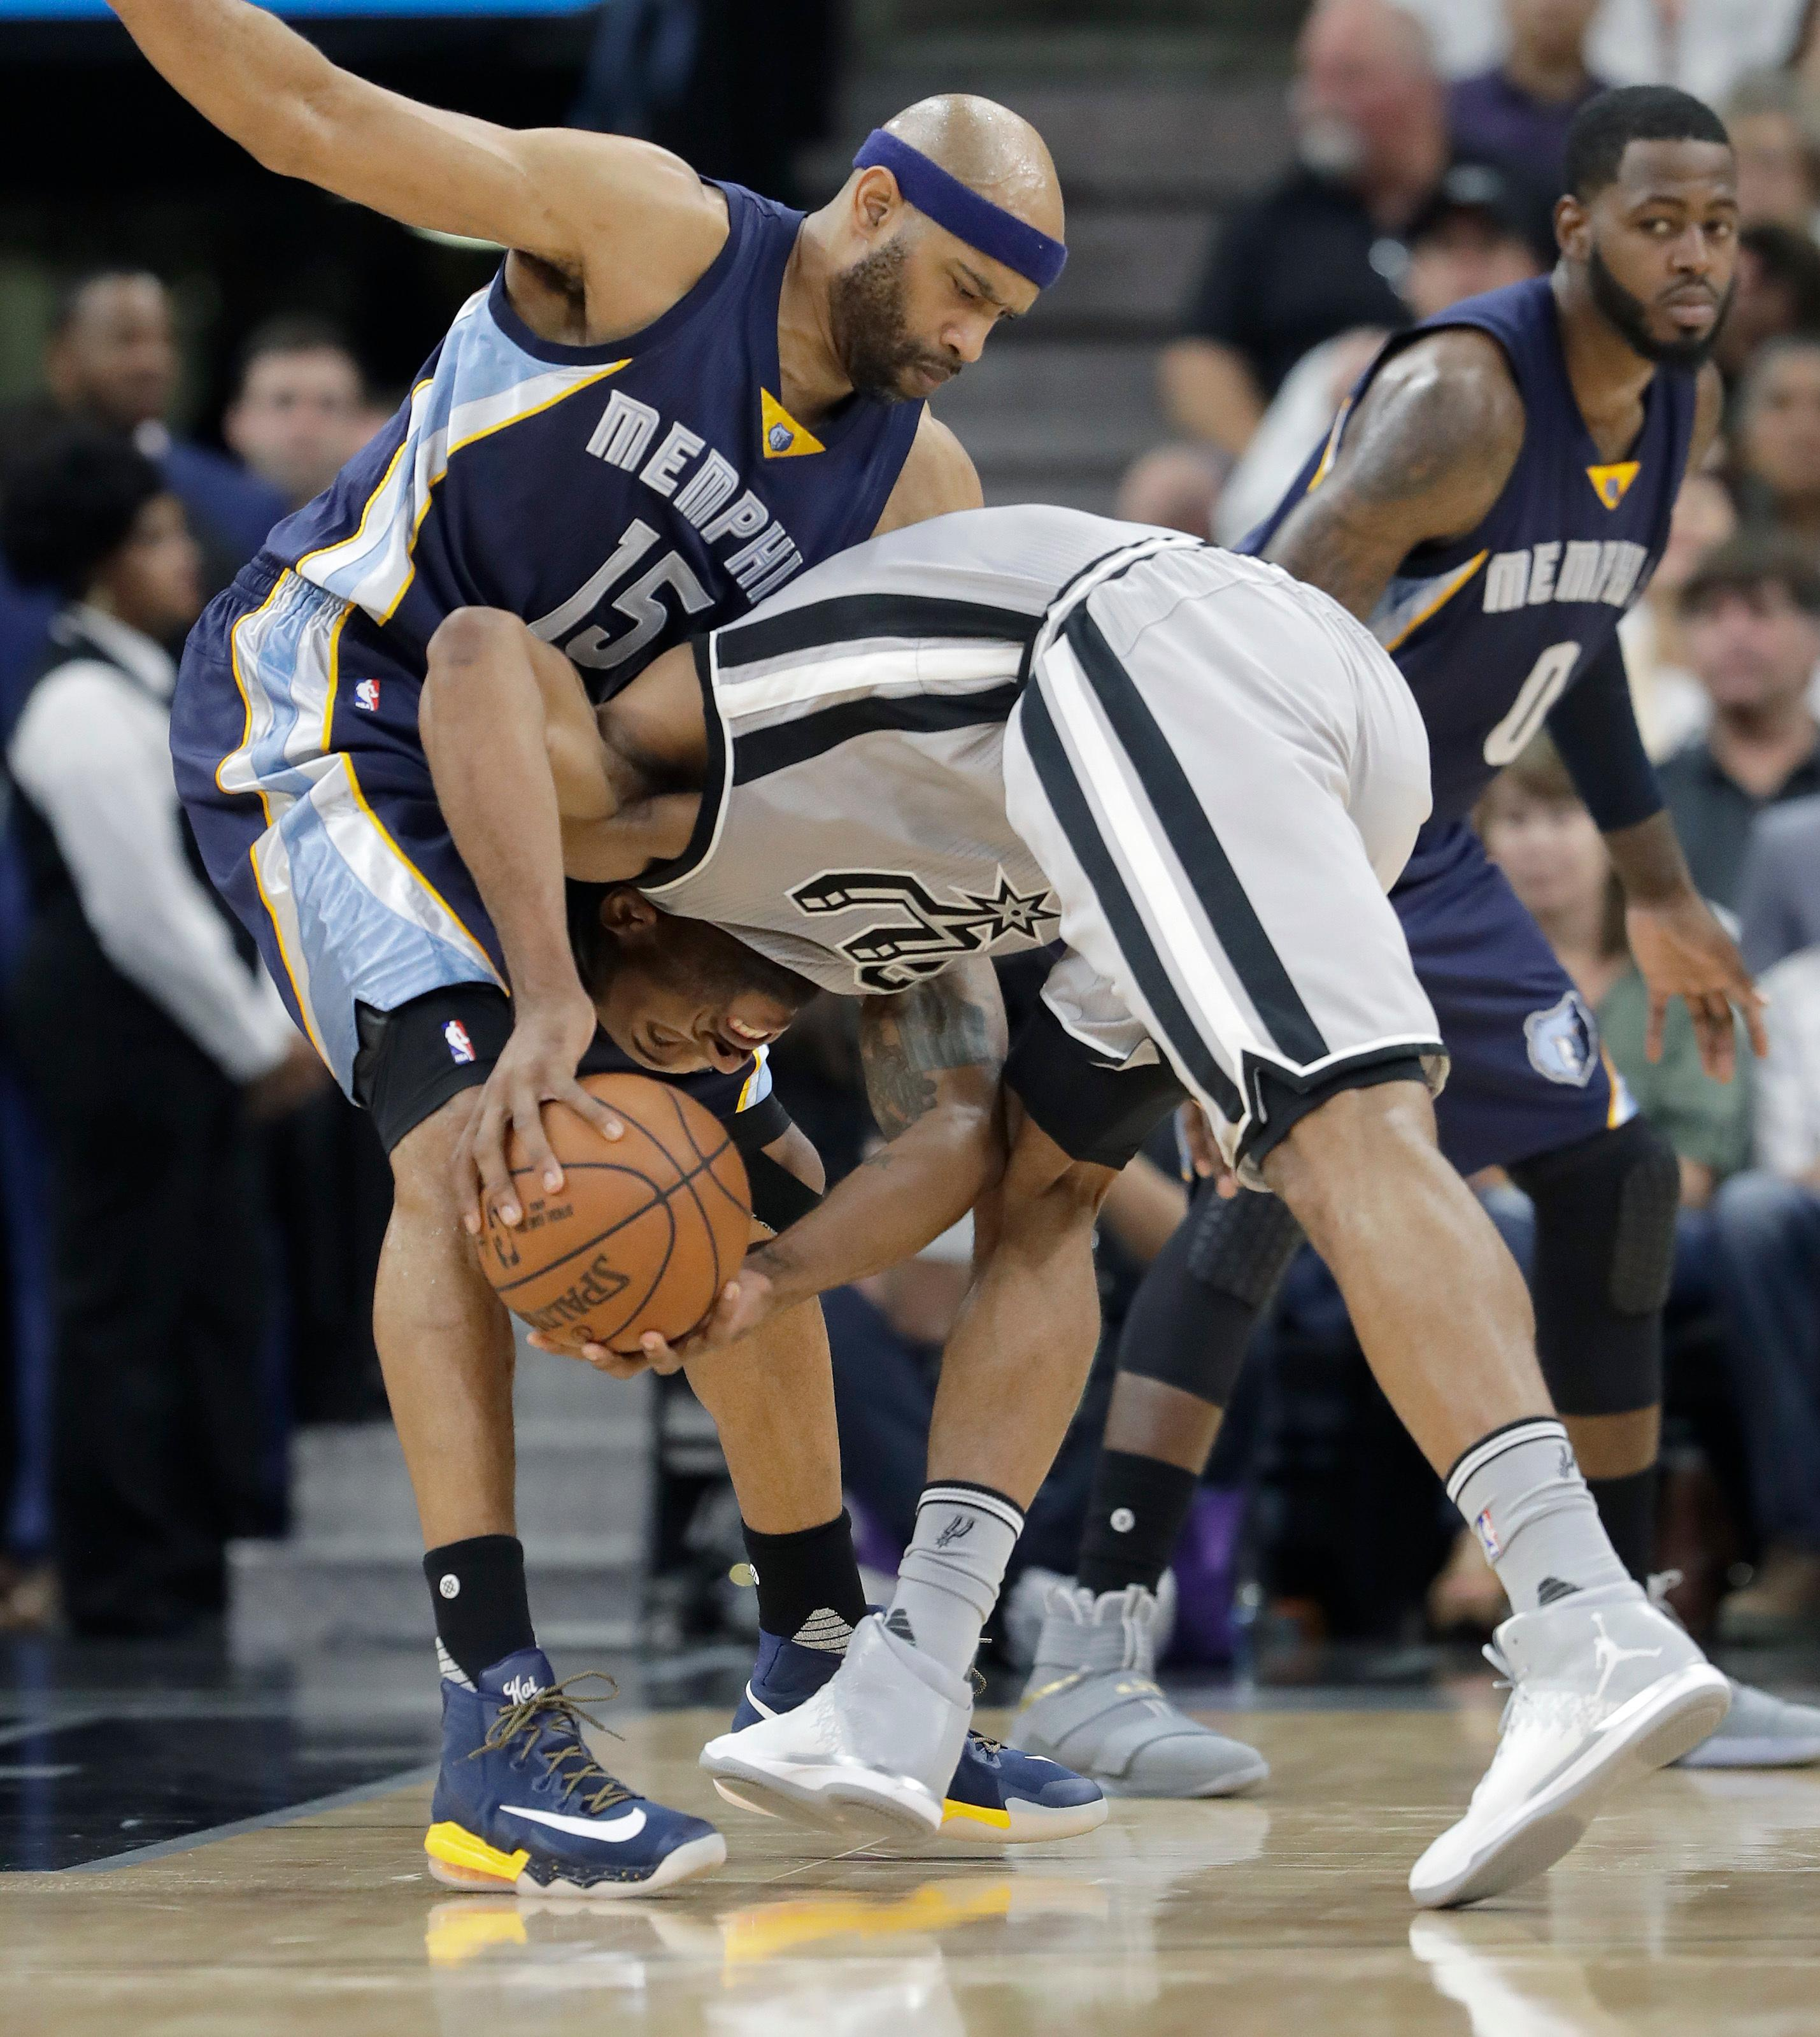 San Antonio Spurs forward Kawhi Leonard (2) crashed into Memphis Grizzlies guard Vince Carter (15) as he tries to drives to the basket during the first half of Game 1 of a first-round NBA basketball playoff series, Saturday, April 15, 2017, in San Antonio. (AP Photo/Eric Gay)